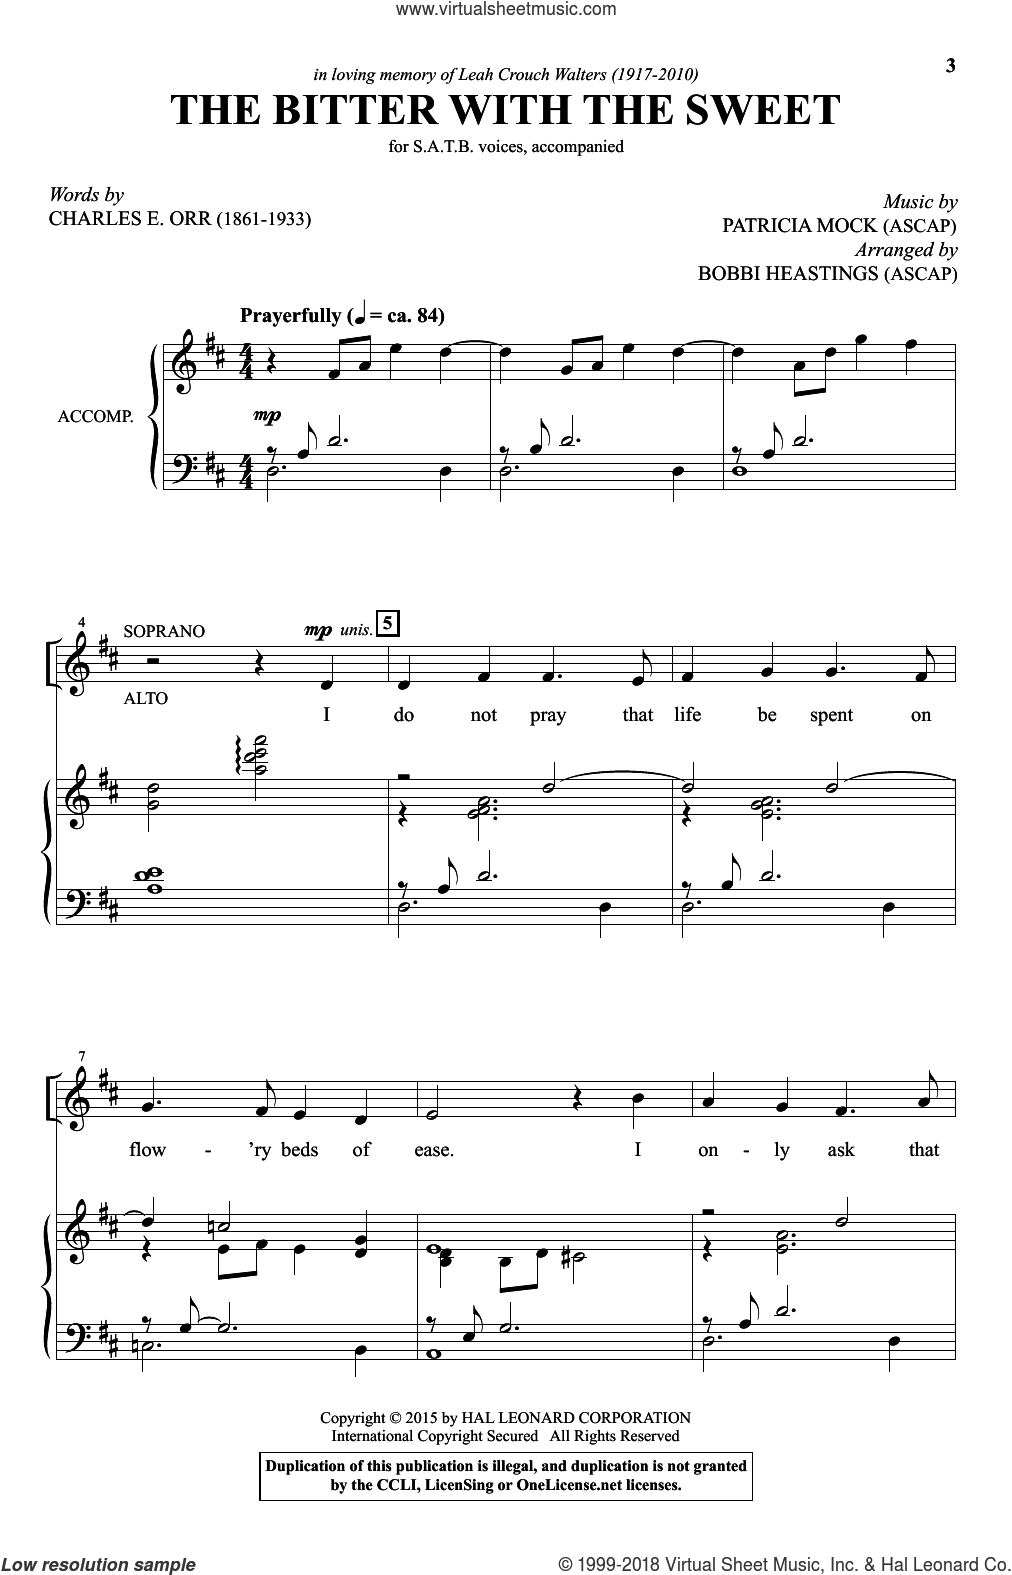 The Bitter With The Sweet sheet music for choir (SATB: soprano, alto, tenor, bass) by Patricia Mock, Bobbi Heastings, Charles Orr and Charles E. Orr, intermediate